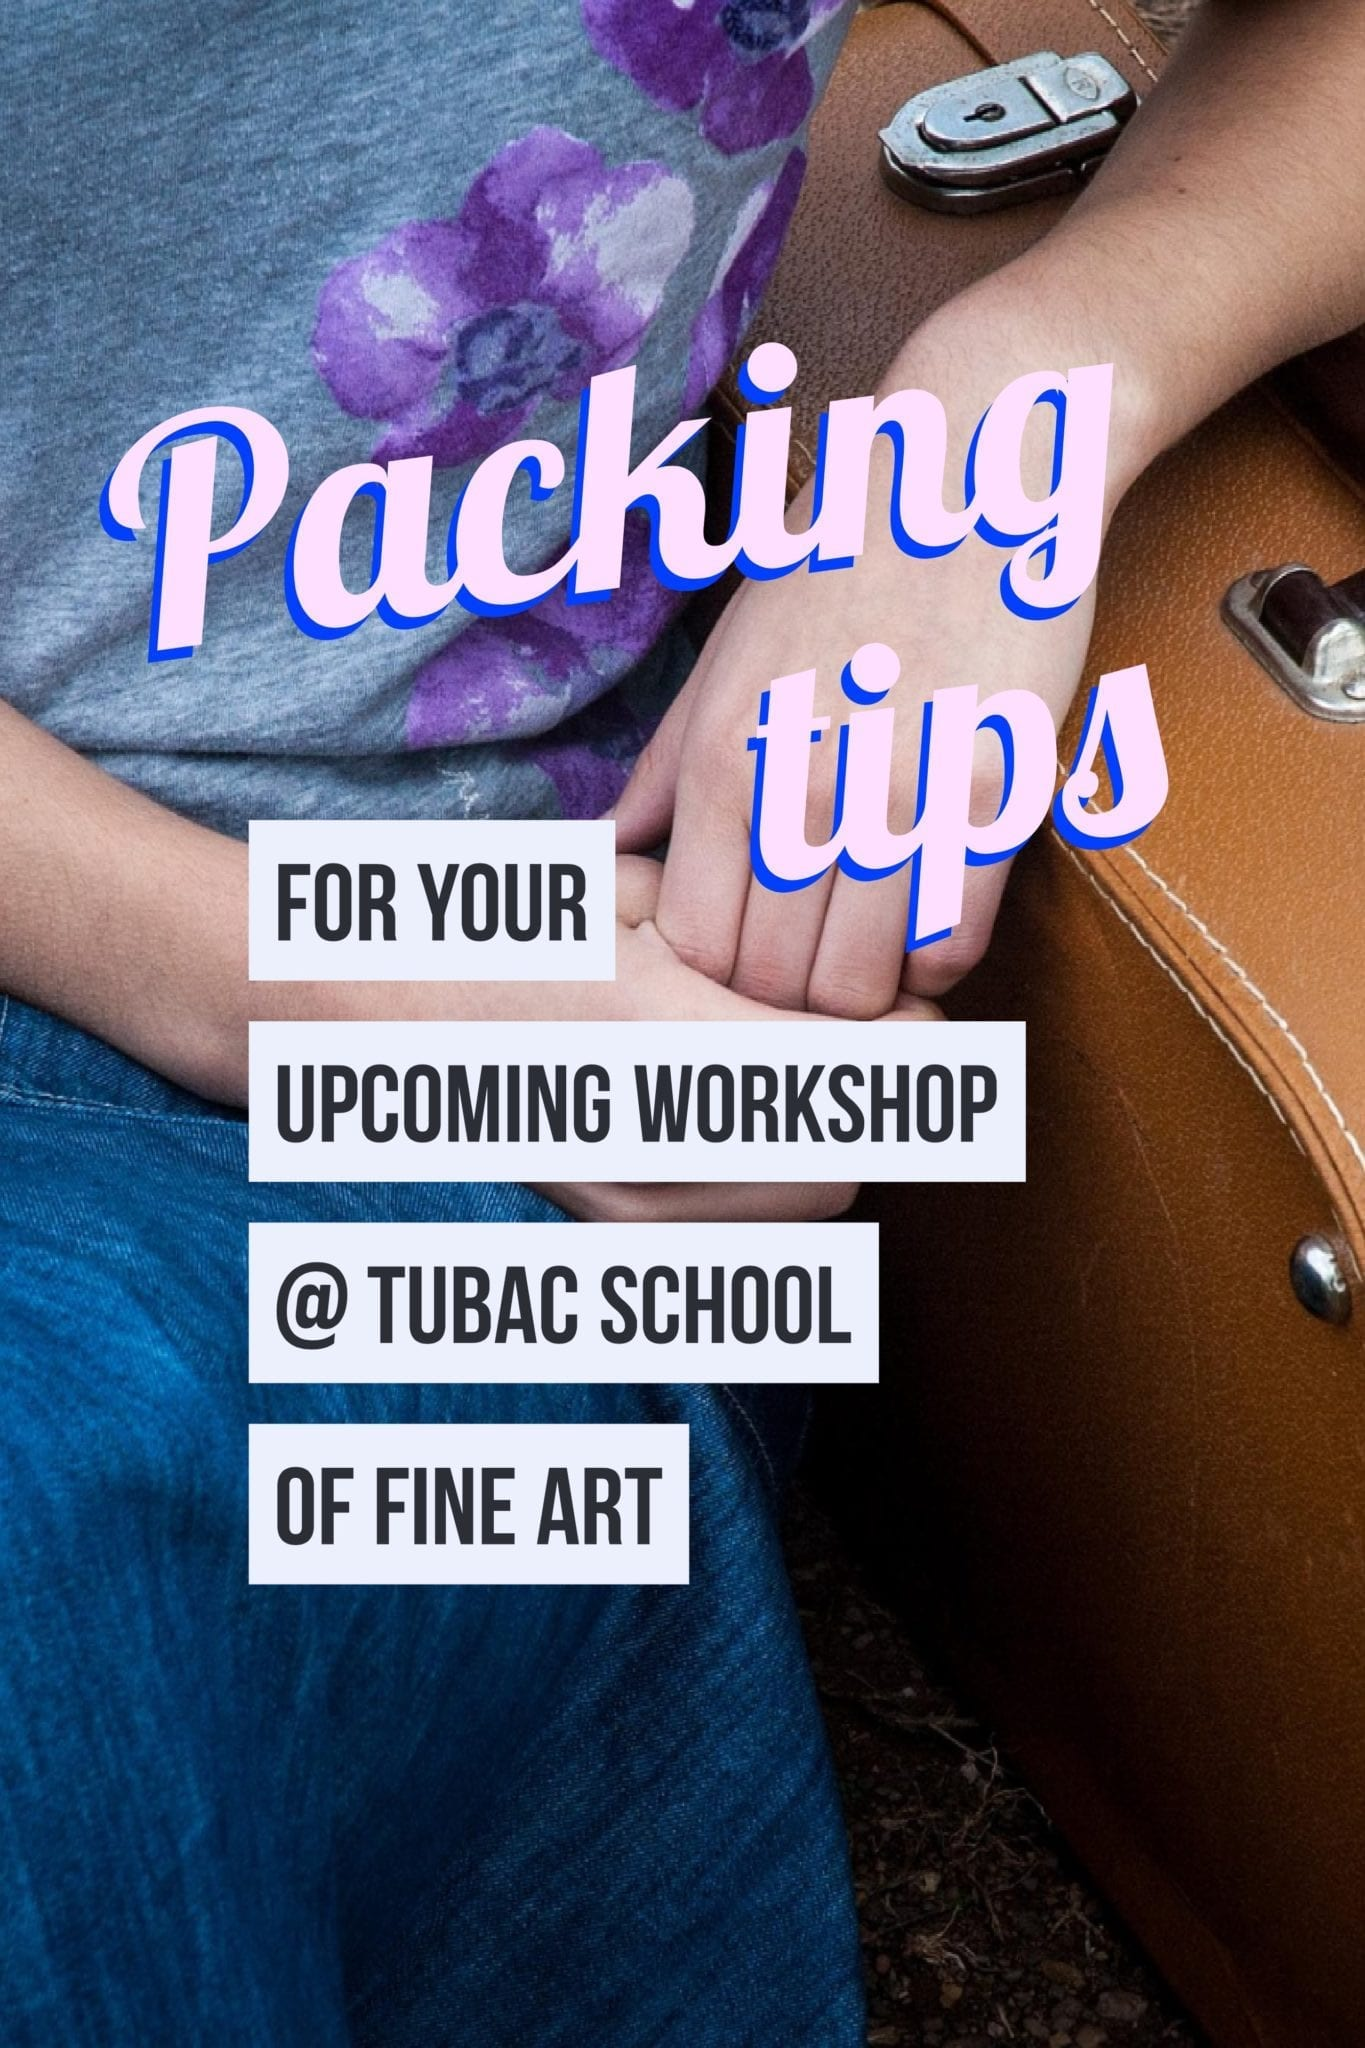 Packing tips for your upcoming workshop in Tubac at Tubac School of Fine Art LLC